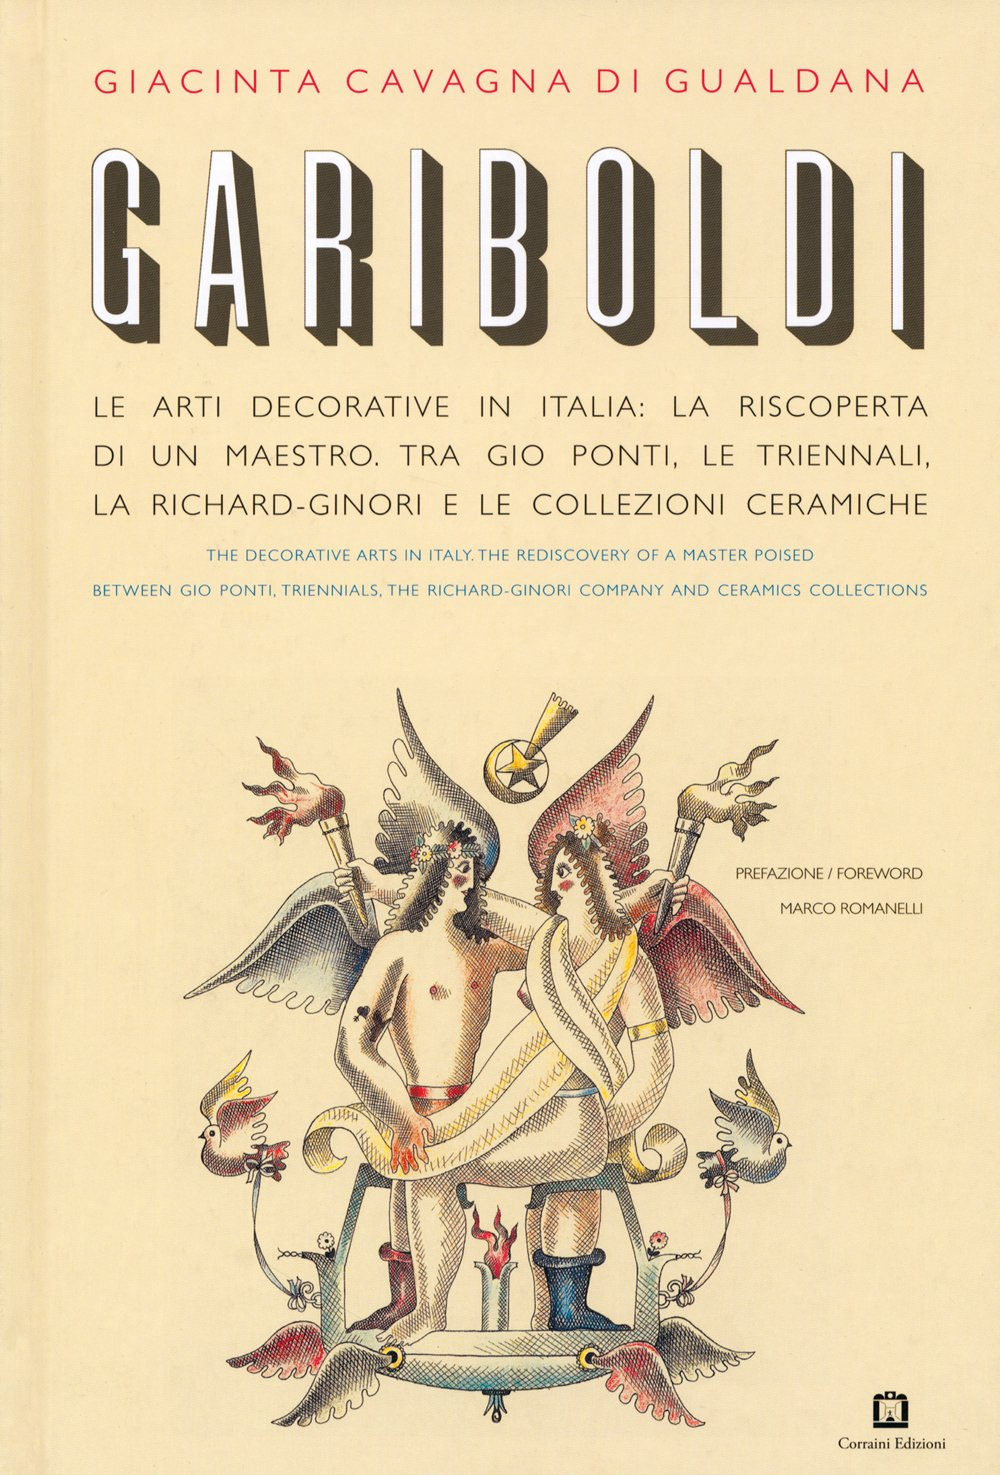 Download Gariboldi: The Decorative Arts in Italy: The Rediscovery of a master Poised between Gio Ponti, Triennals, the Richard-Ginori Company and Ceramics Collections PDF